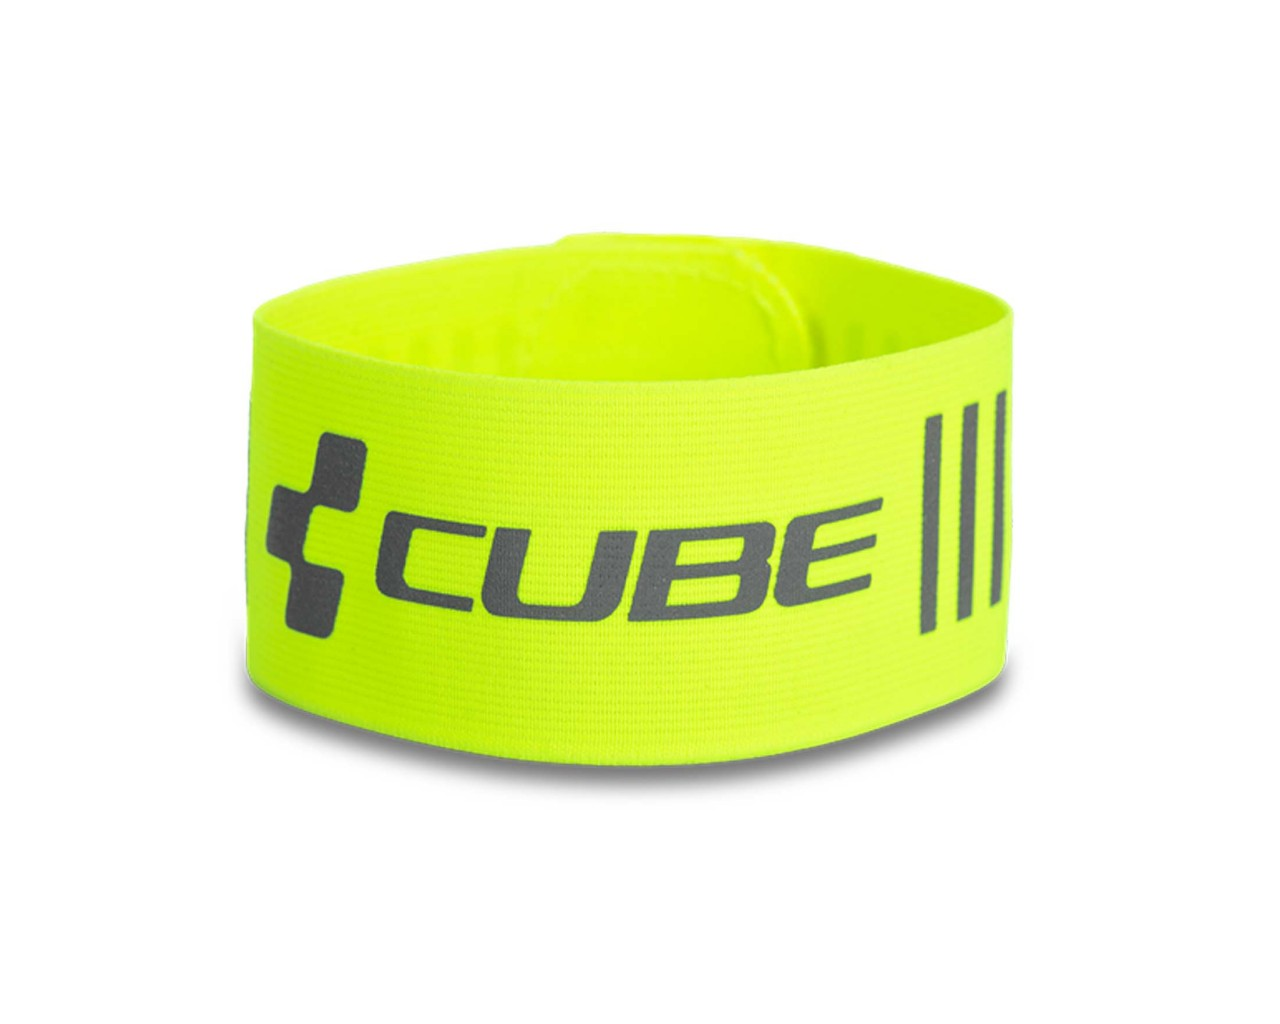 Cube Safety Band | yellow